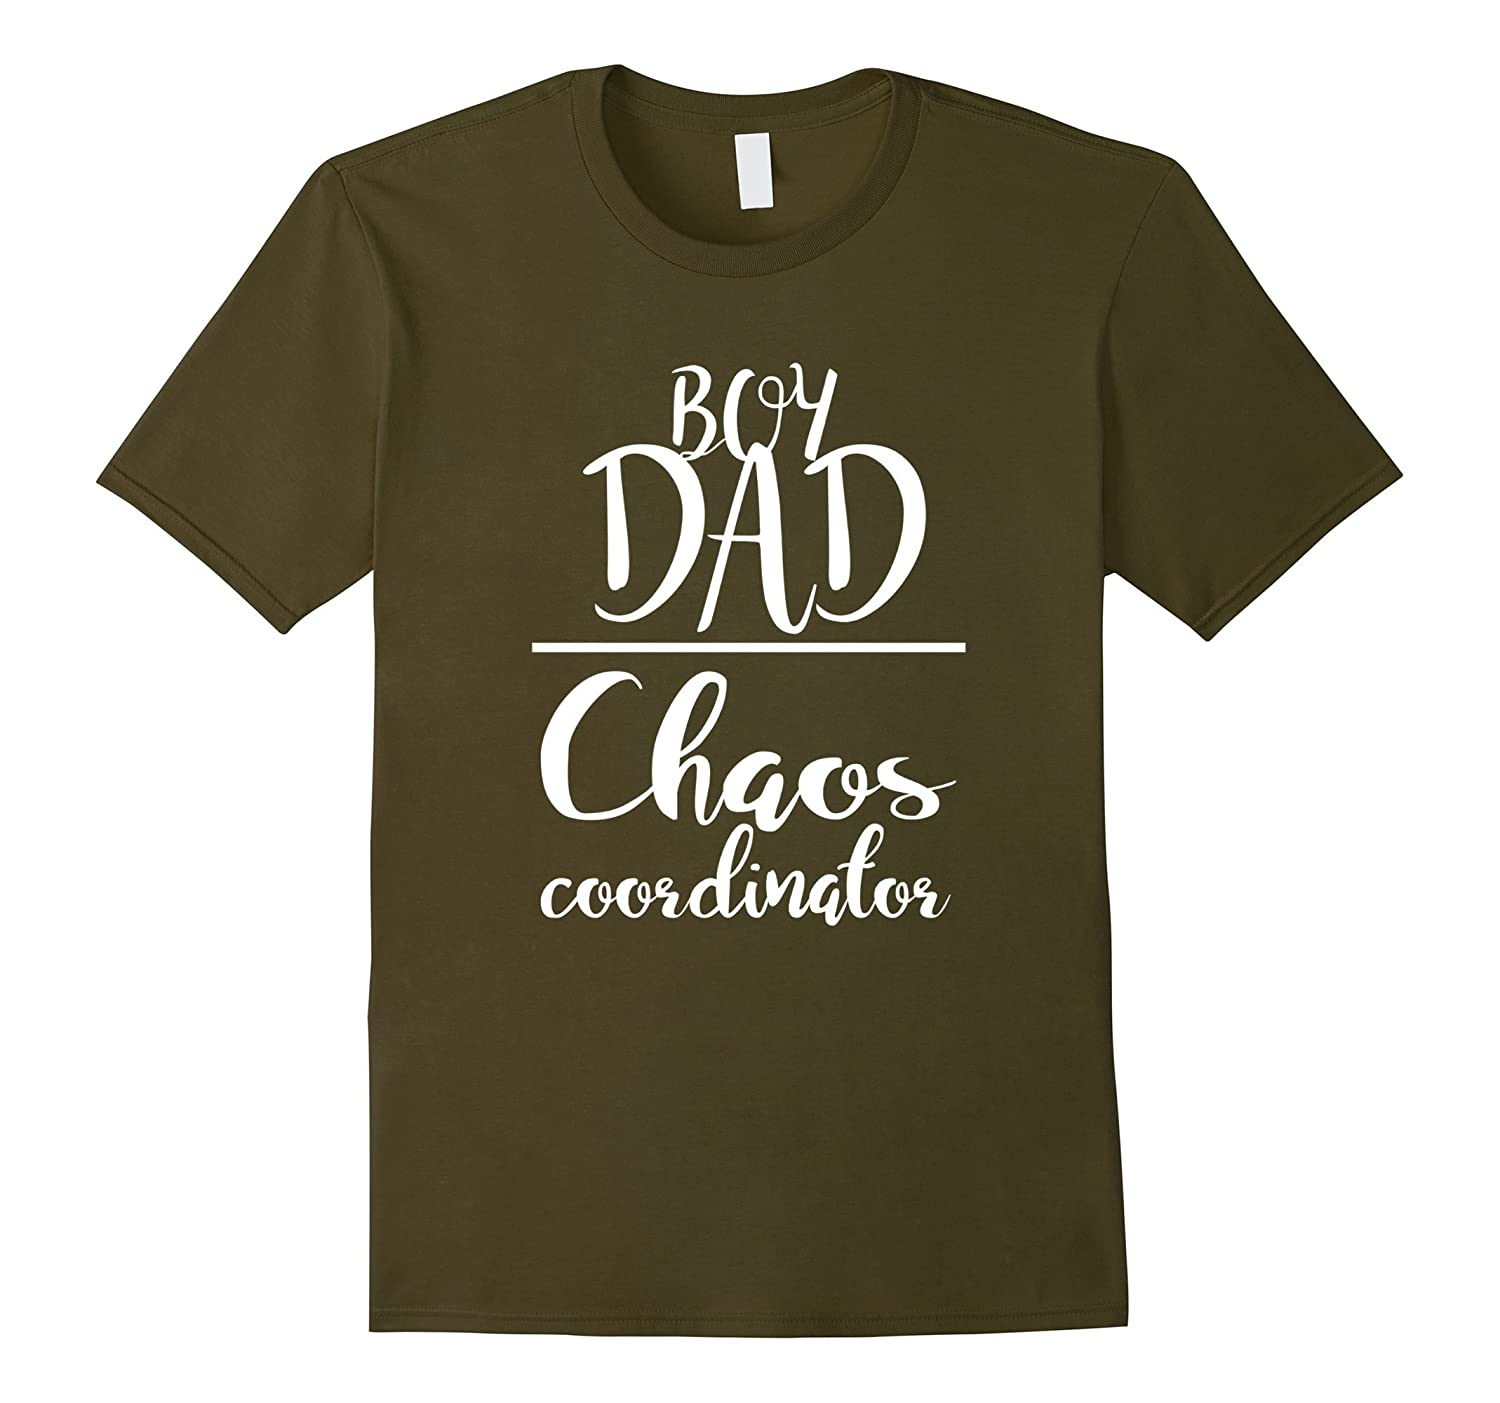 Chaos Coordinator Dad is Boy MothersFathers Day tee shirt-Vaci